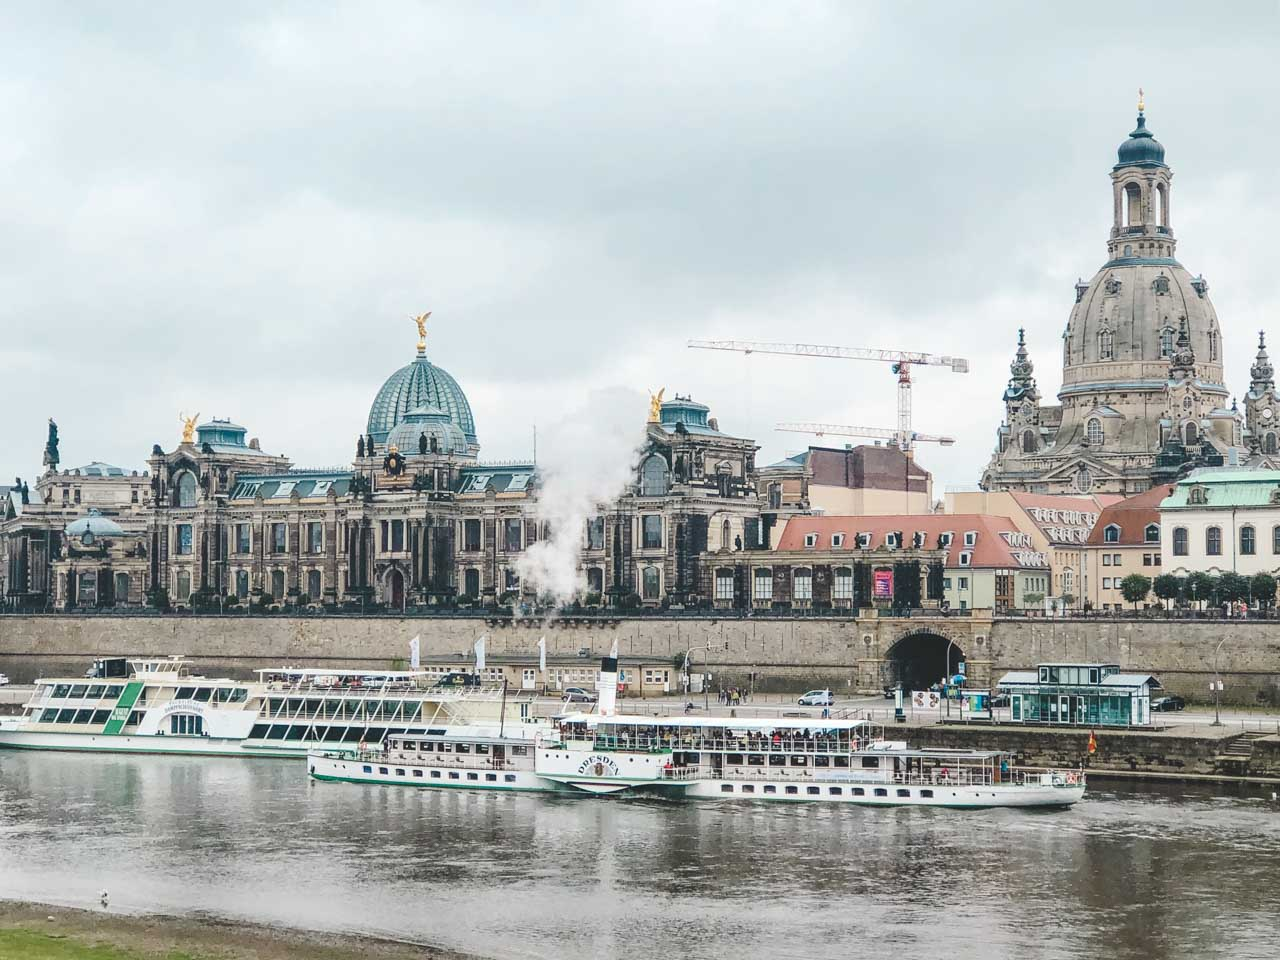 A steamboat on the Elbe river in Dresden, Germany with Bruhl's Terrace in the background